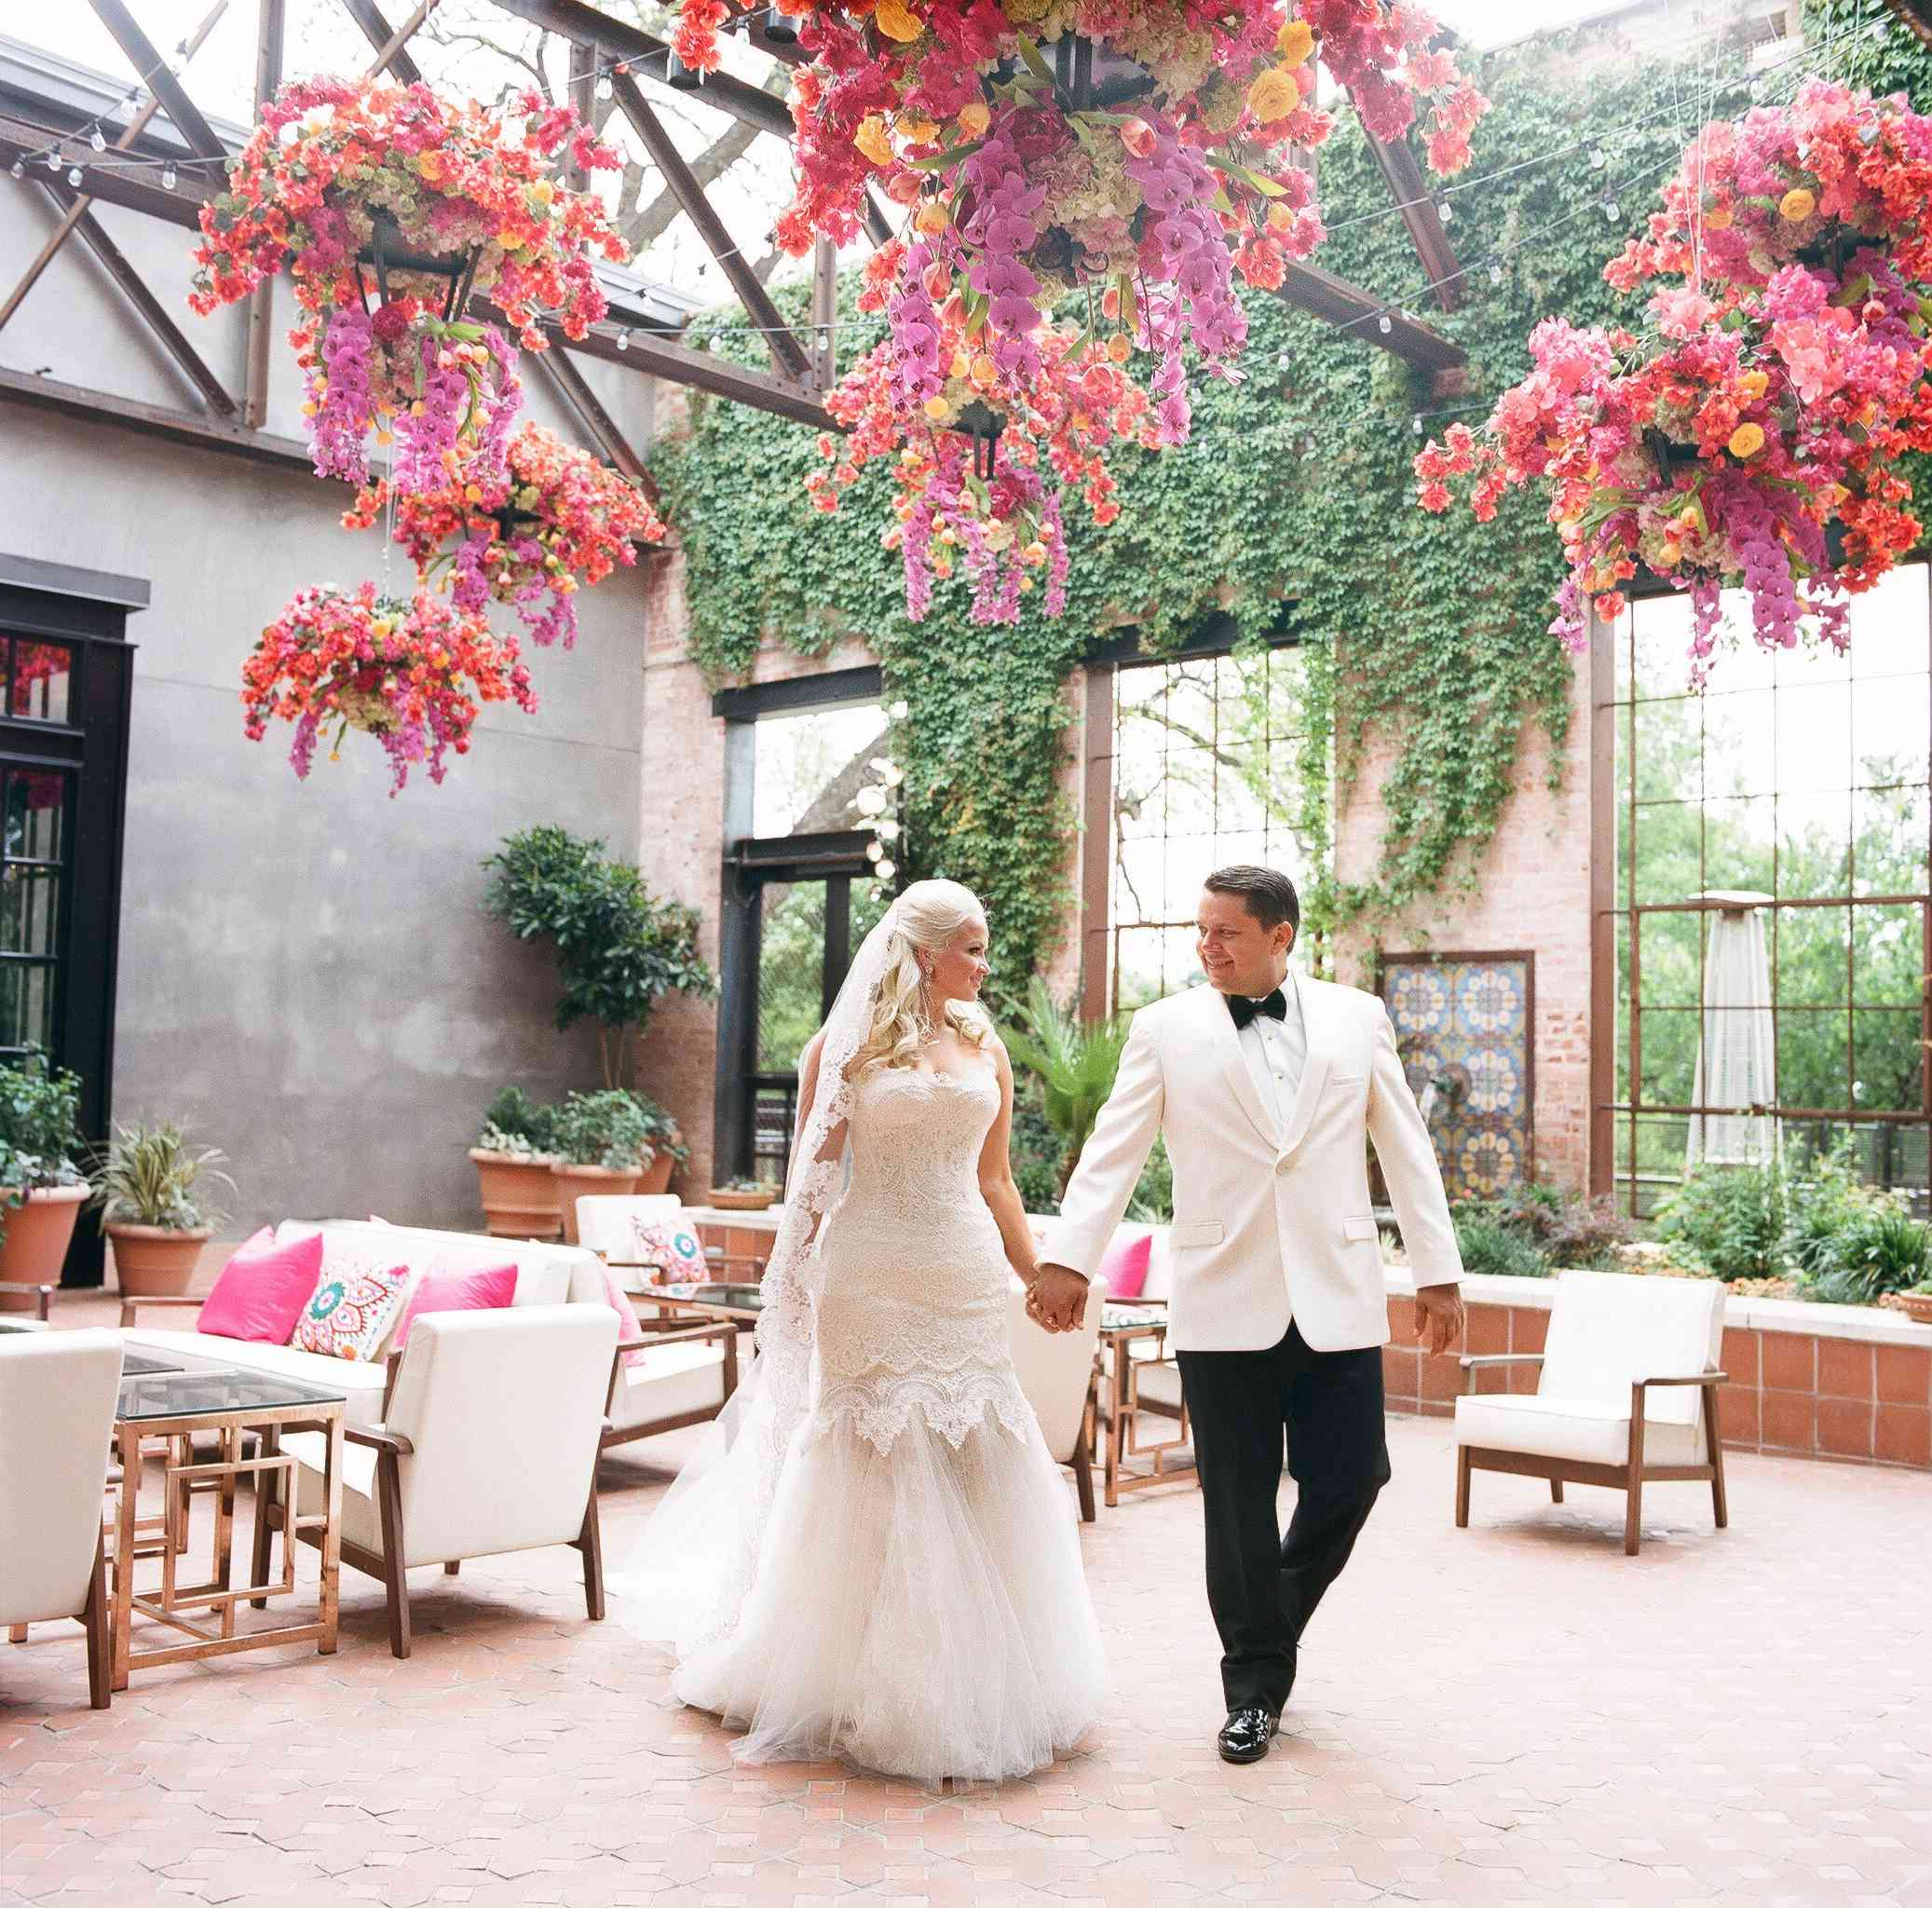 Couple holding hands walking through a floral-filled venue on their wedding day